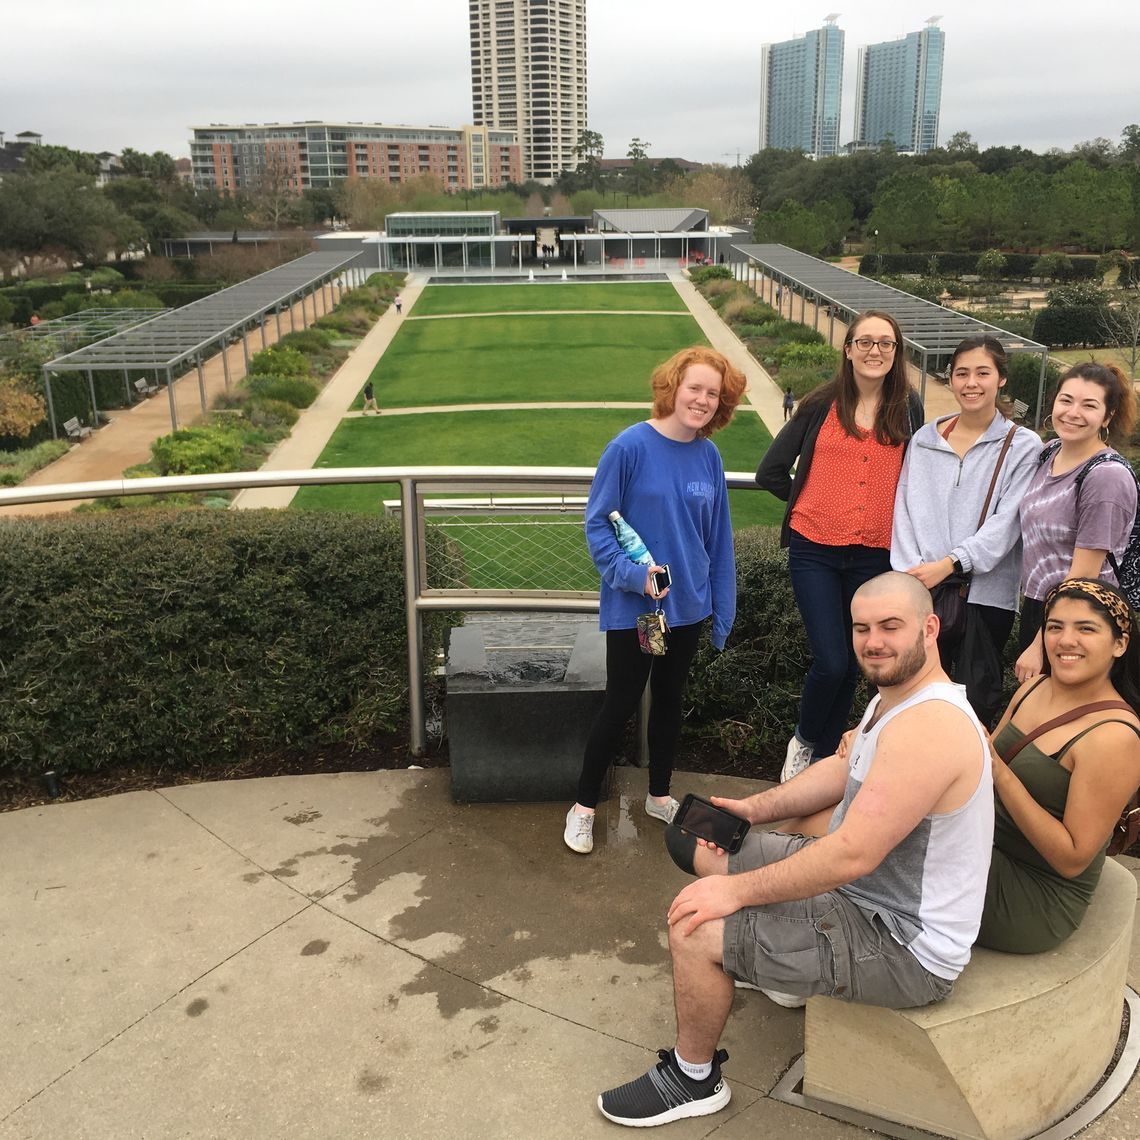 The group took time to explore the museum district of downtown Houston. What a wonderful view of the landscape from up above!